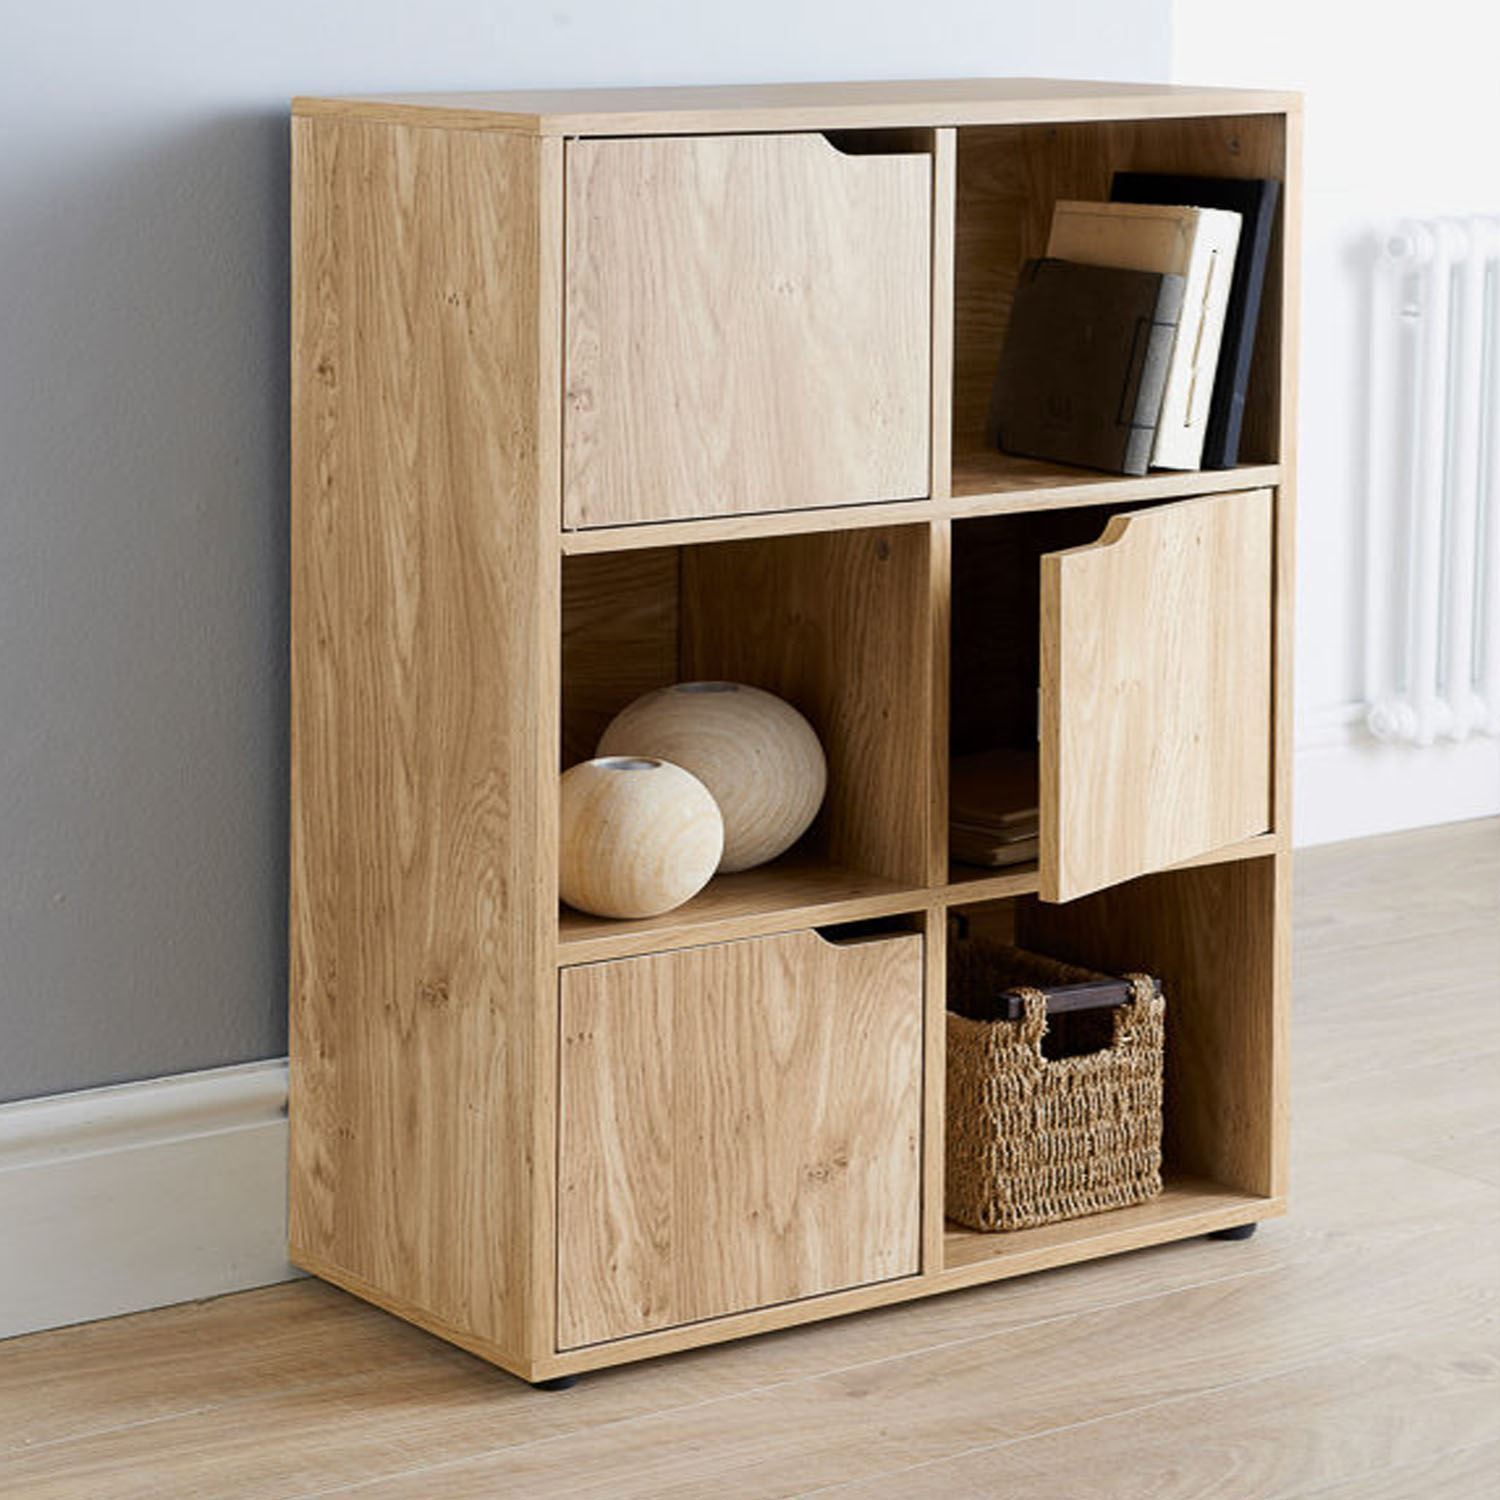 Oak finish cube door wooden storage unit display